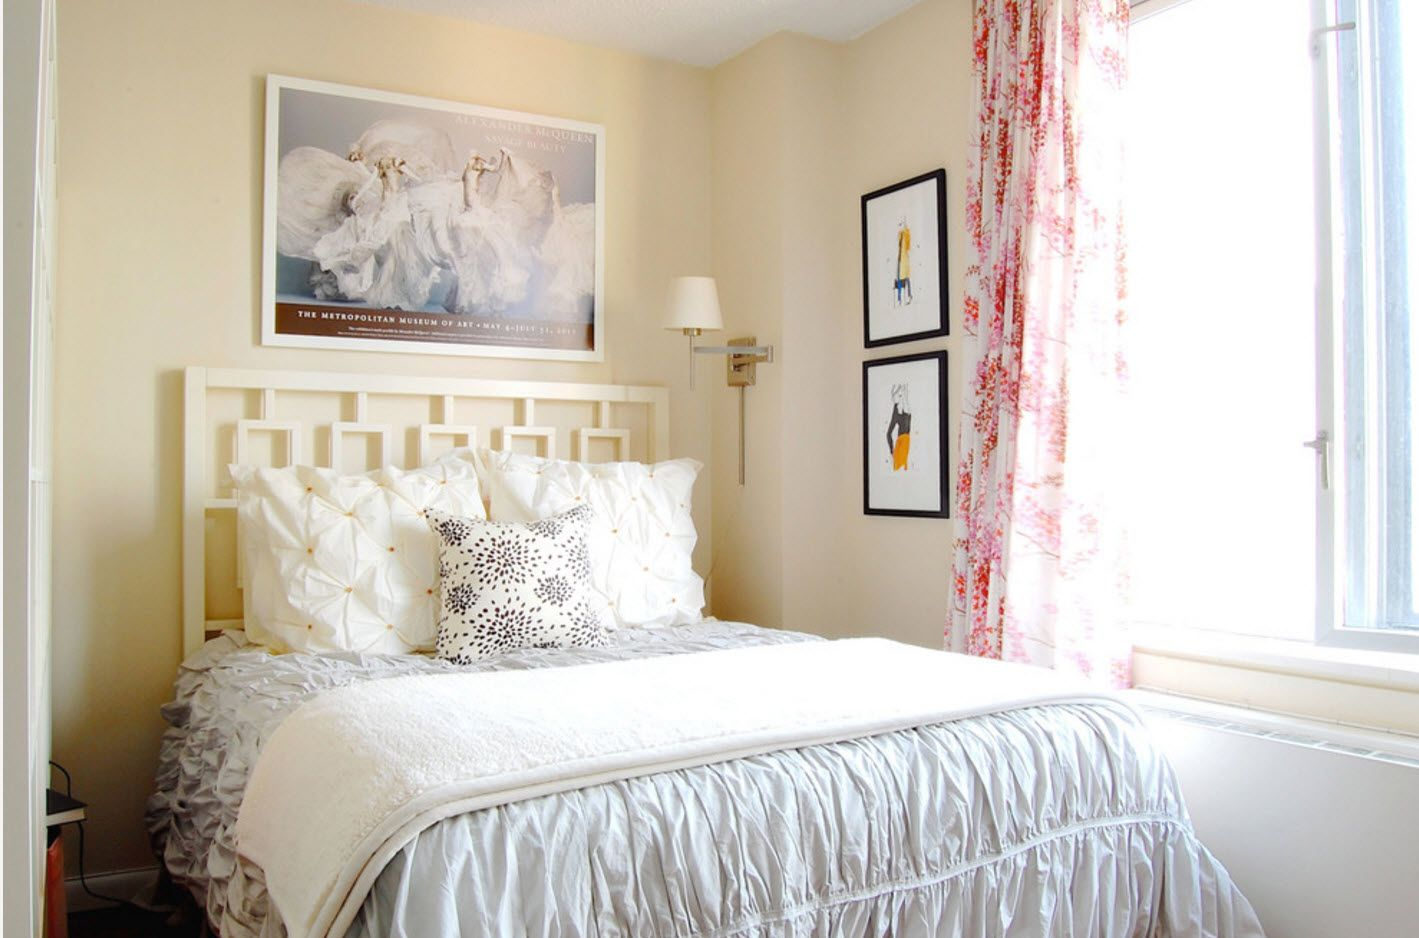 Pictures, crimson dotted tulle curtains for maximum comfort in the bedroom